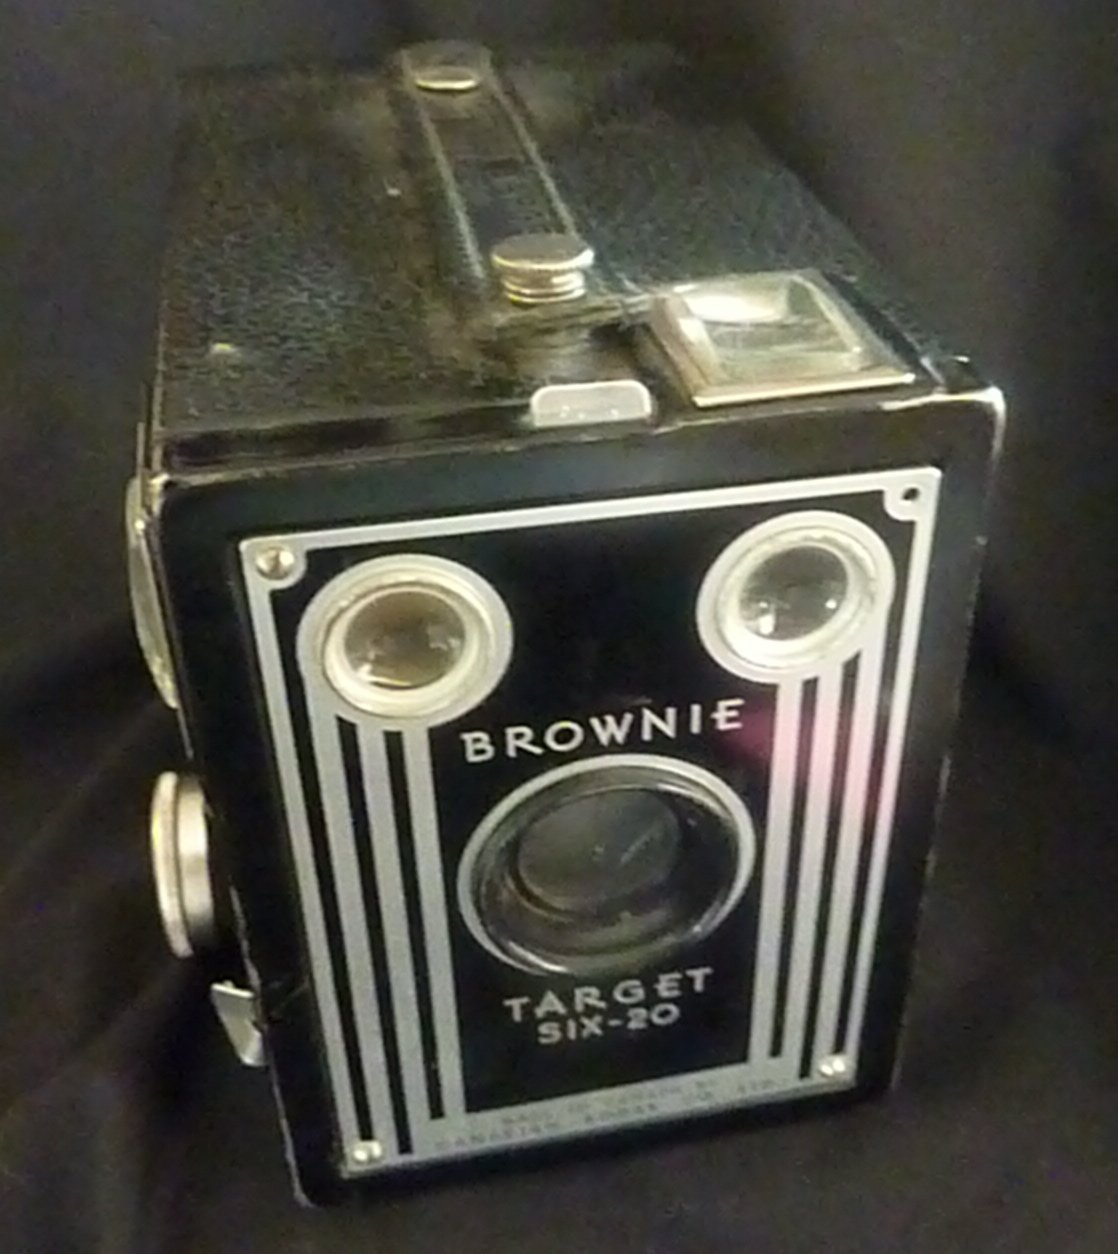 Antique Target BROWNIE Six-20 Camera (1941 1946)